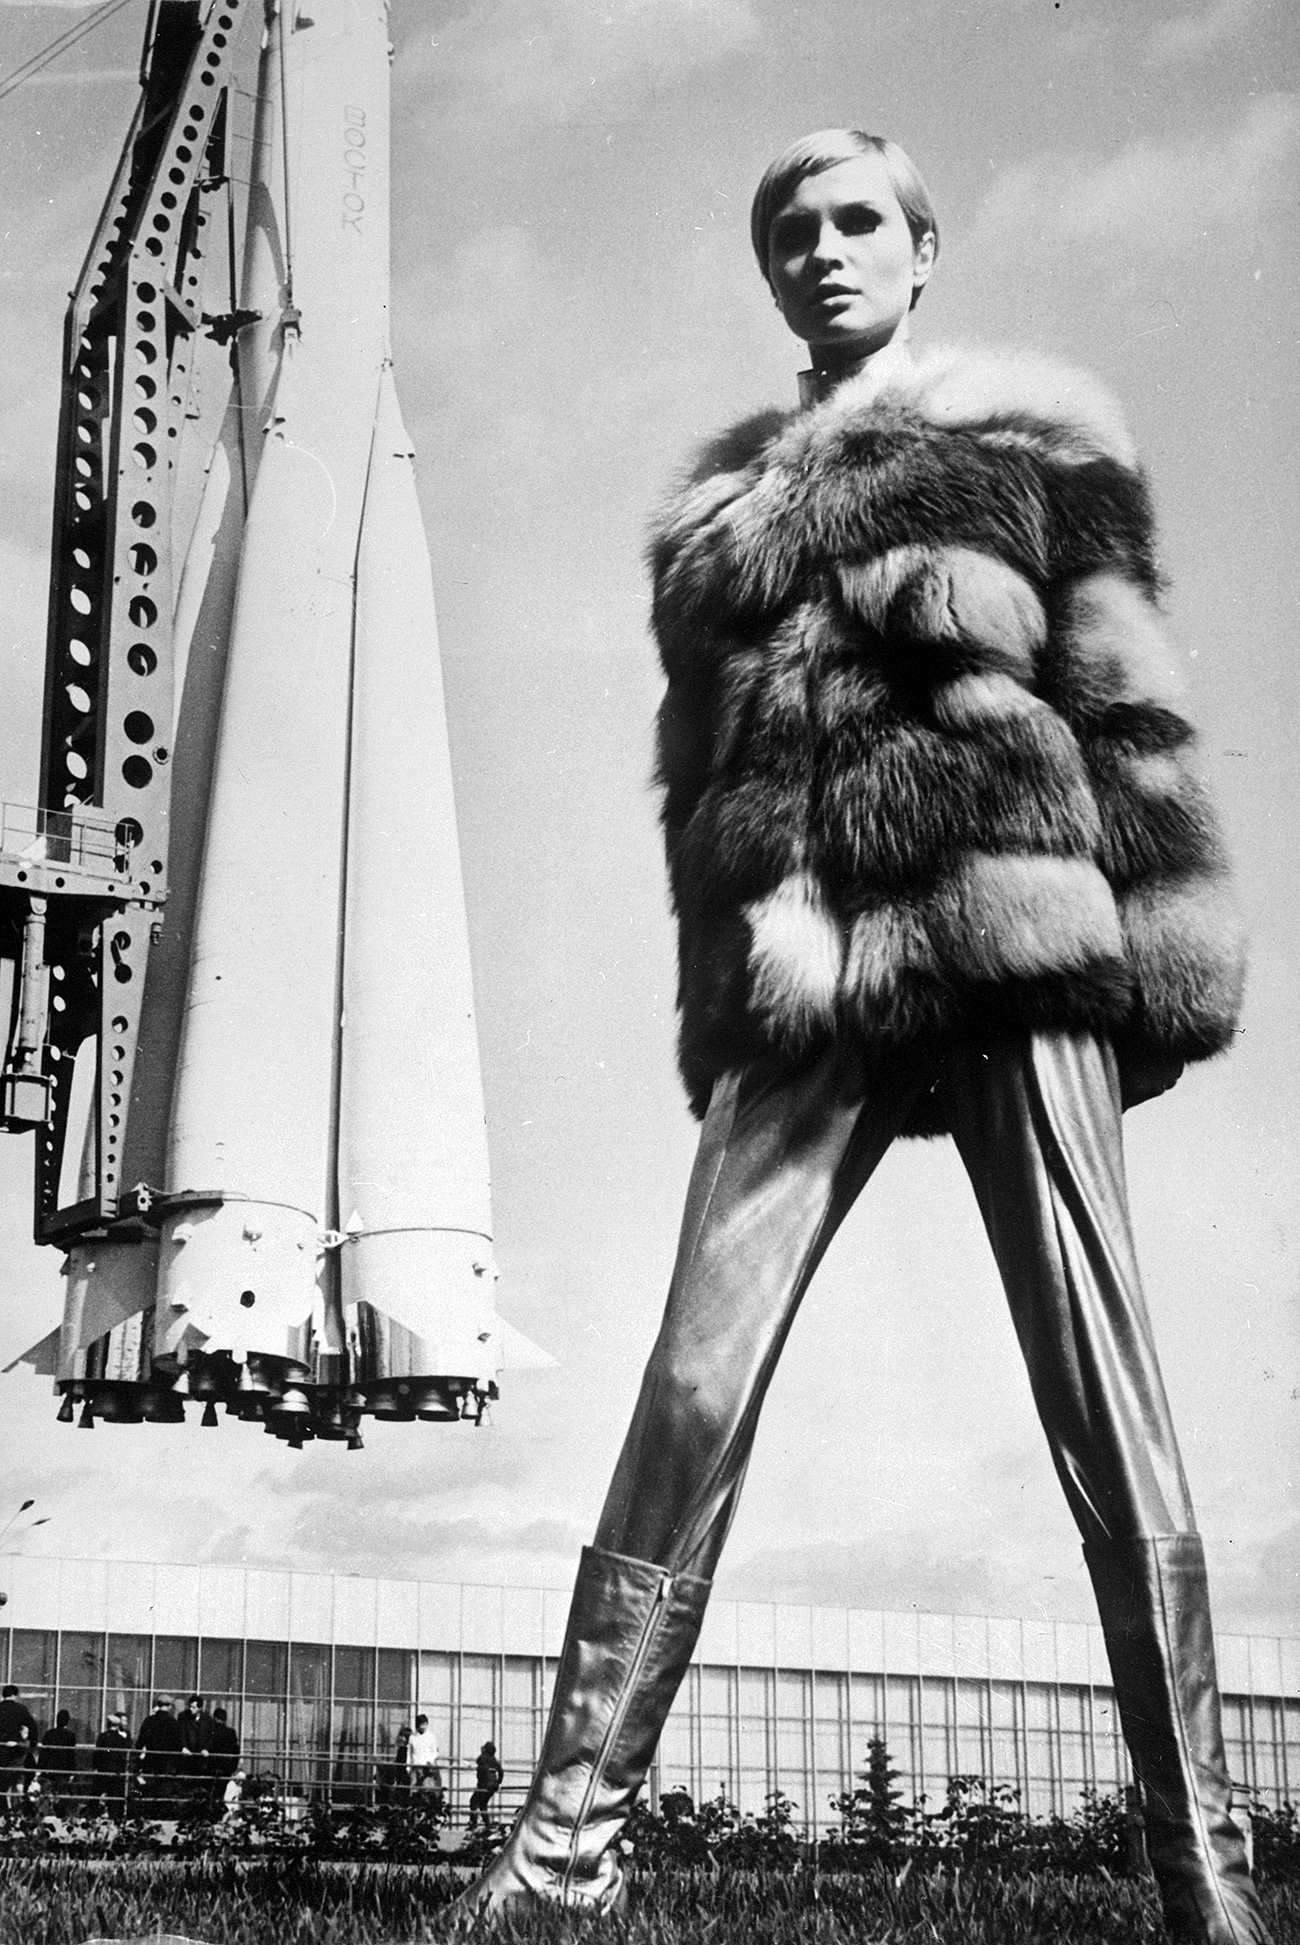 Space-age styling from Russian designers, as Moscovite model Galina Milovskaya wears a metallic ensemble with a red fox fur jacket, leggings and silver boots, the look is completed by the Vostock space rocket in the background. / Getty Images